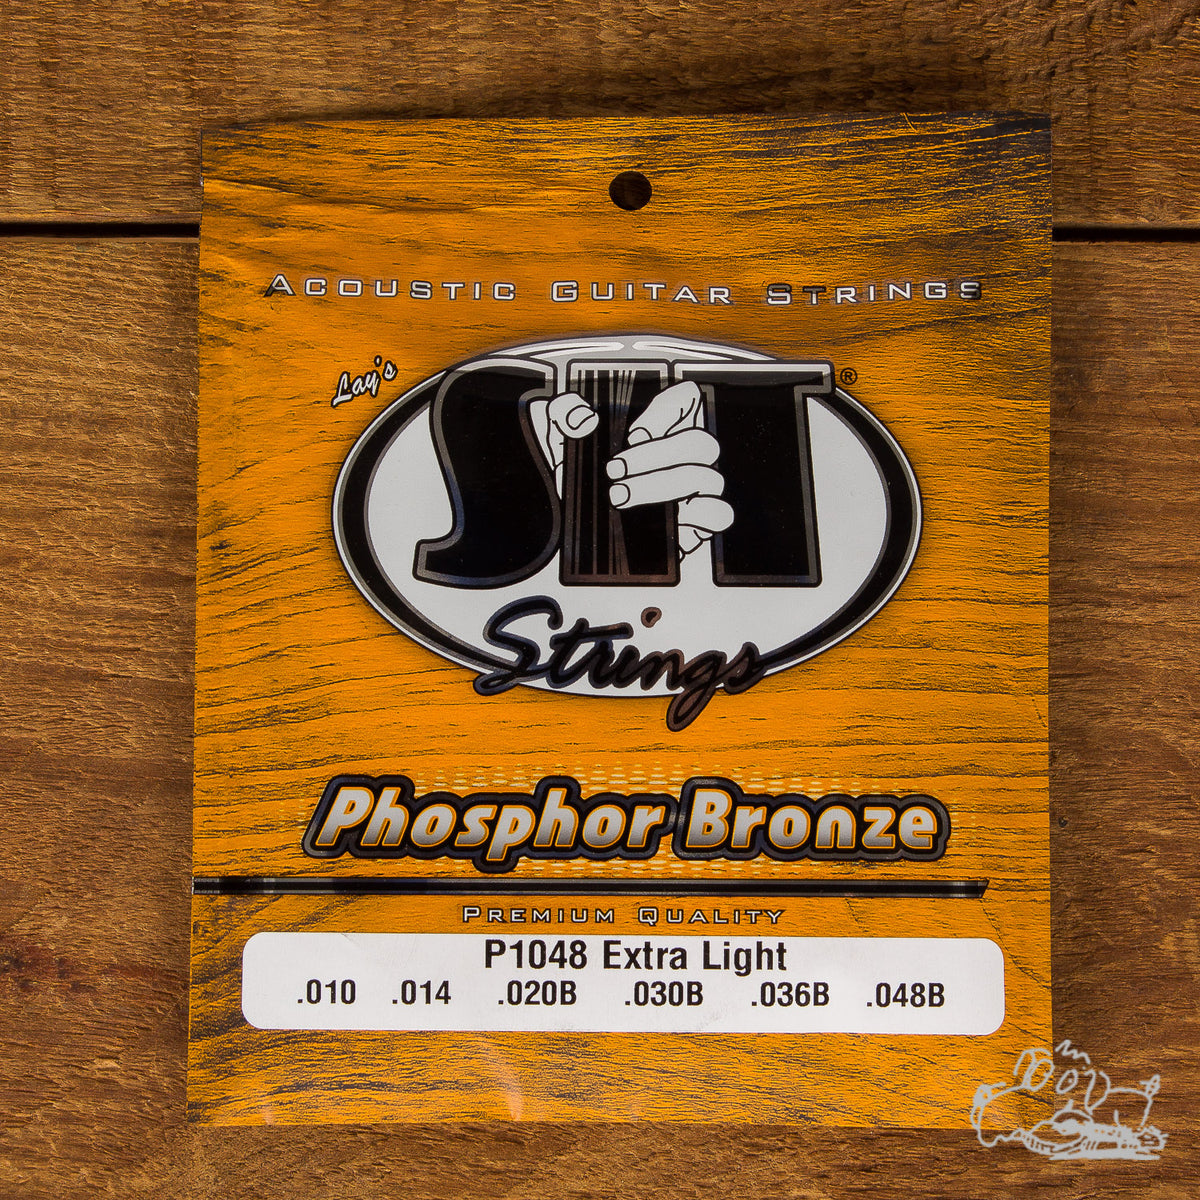 S.I.T Phosphor Bronze Acoustic Guitar Strings